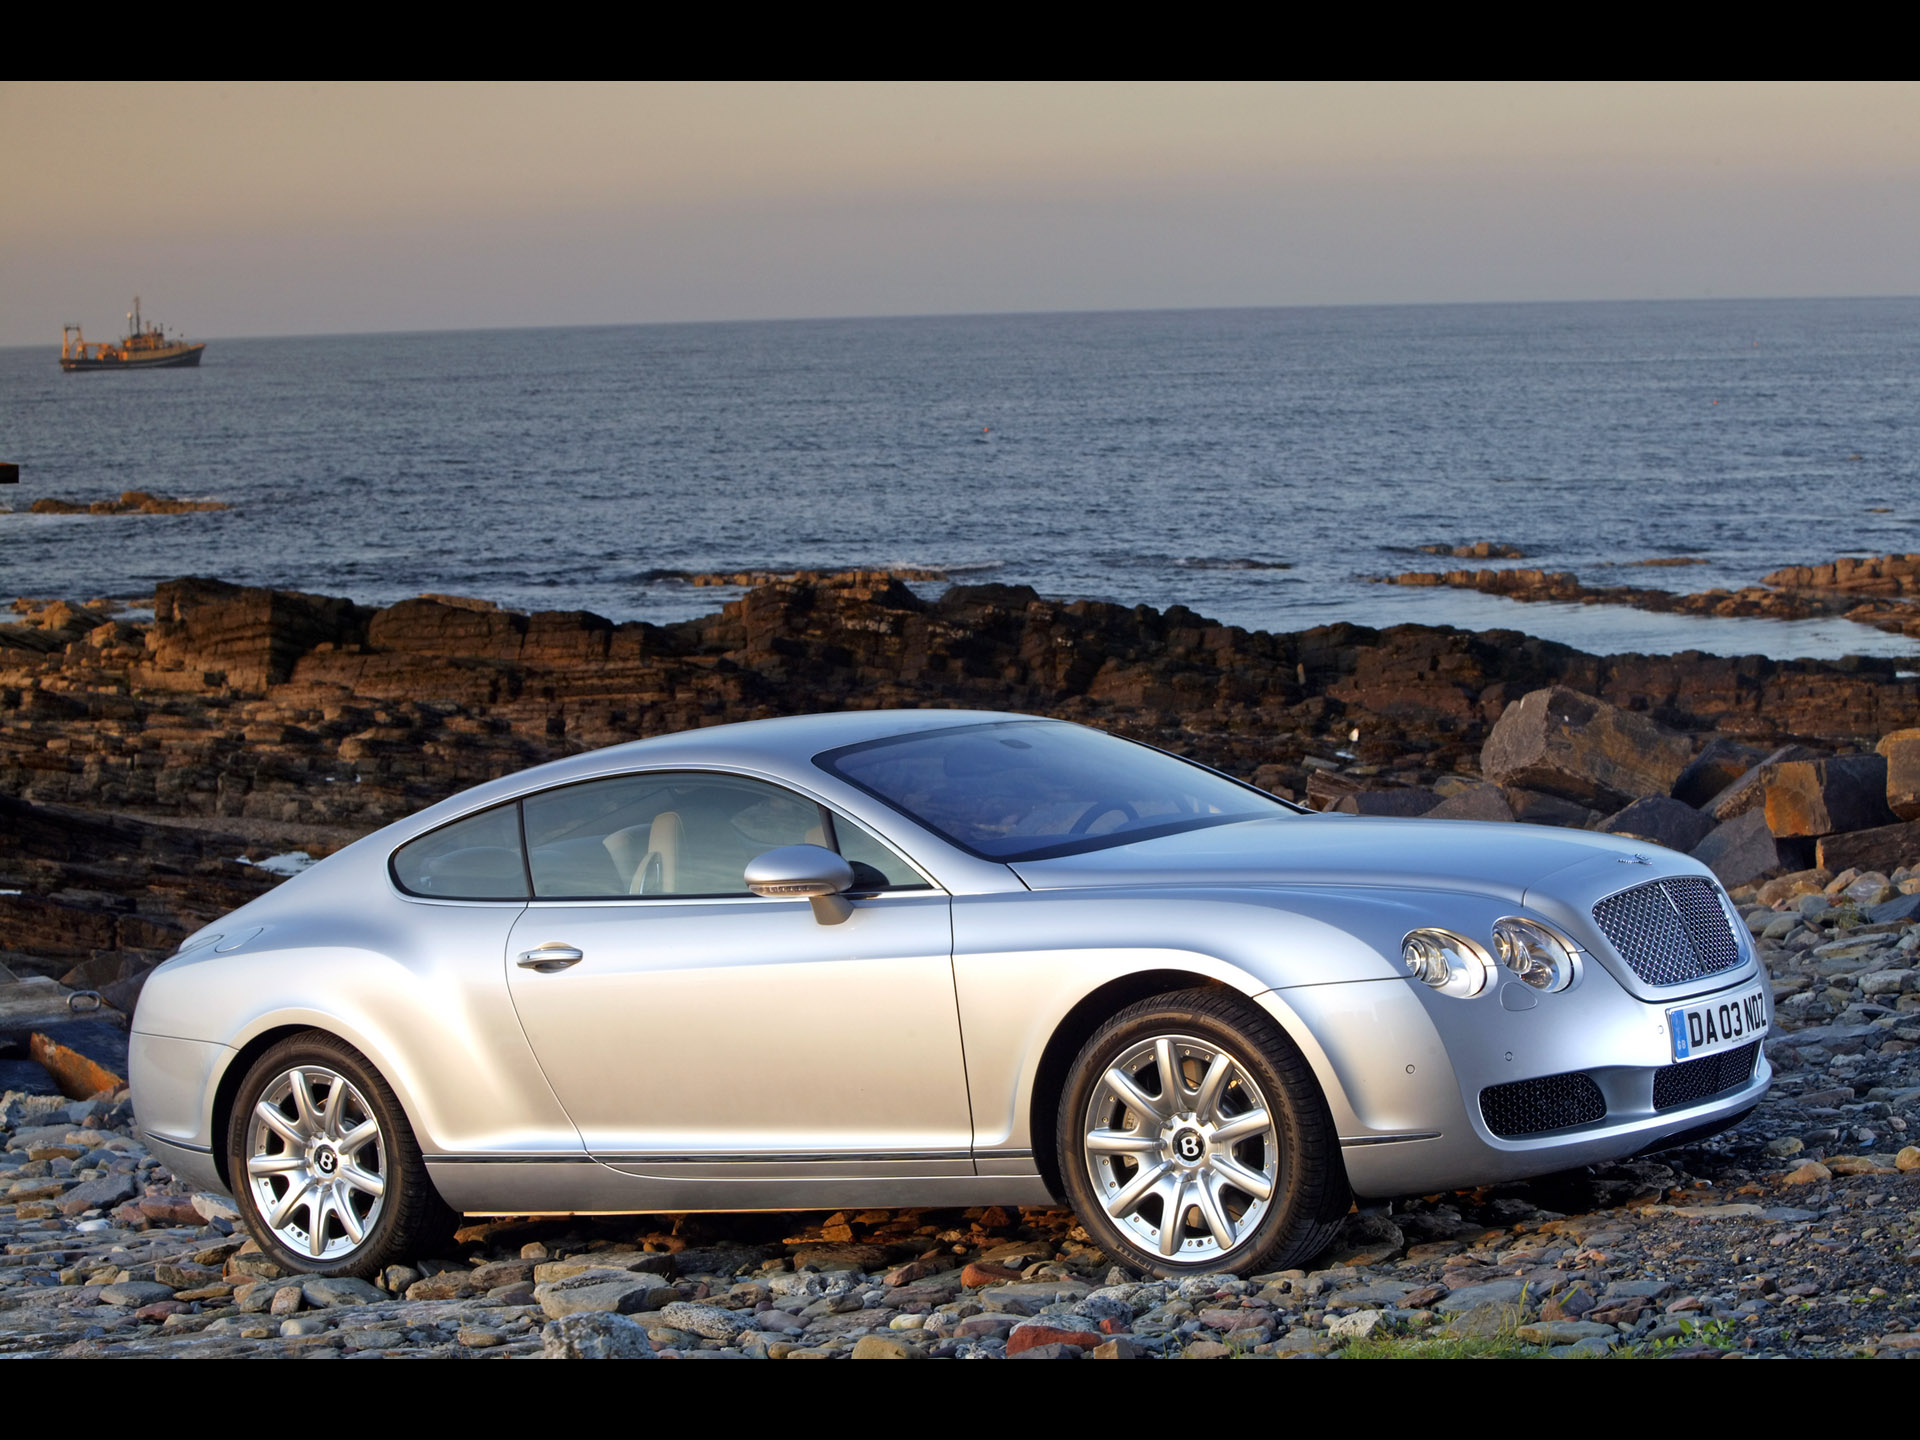 2004 Bentley Continental Gt #2